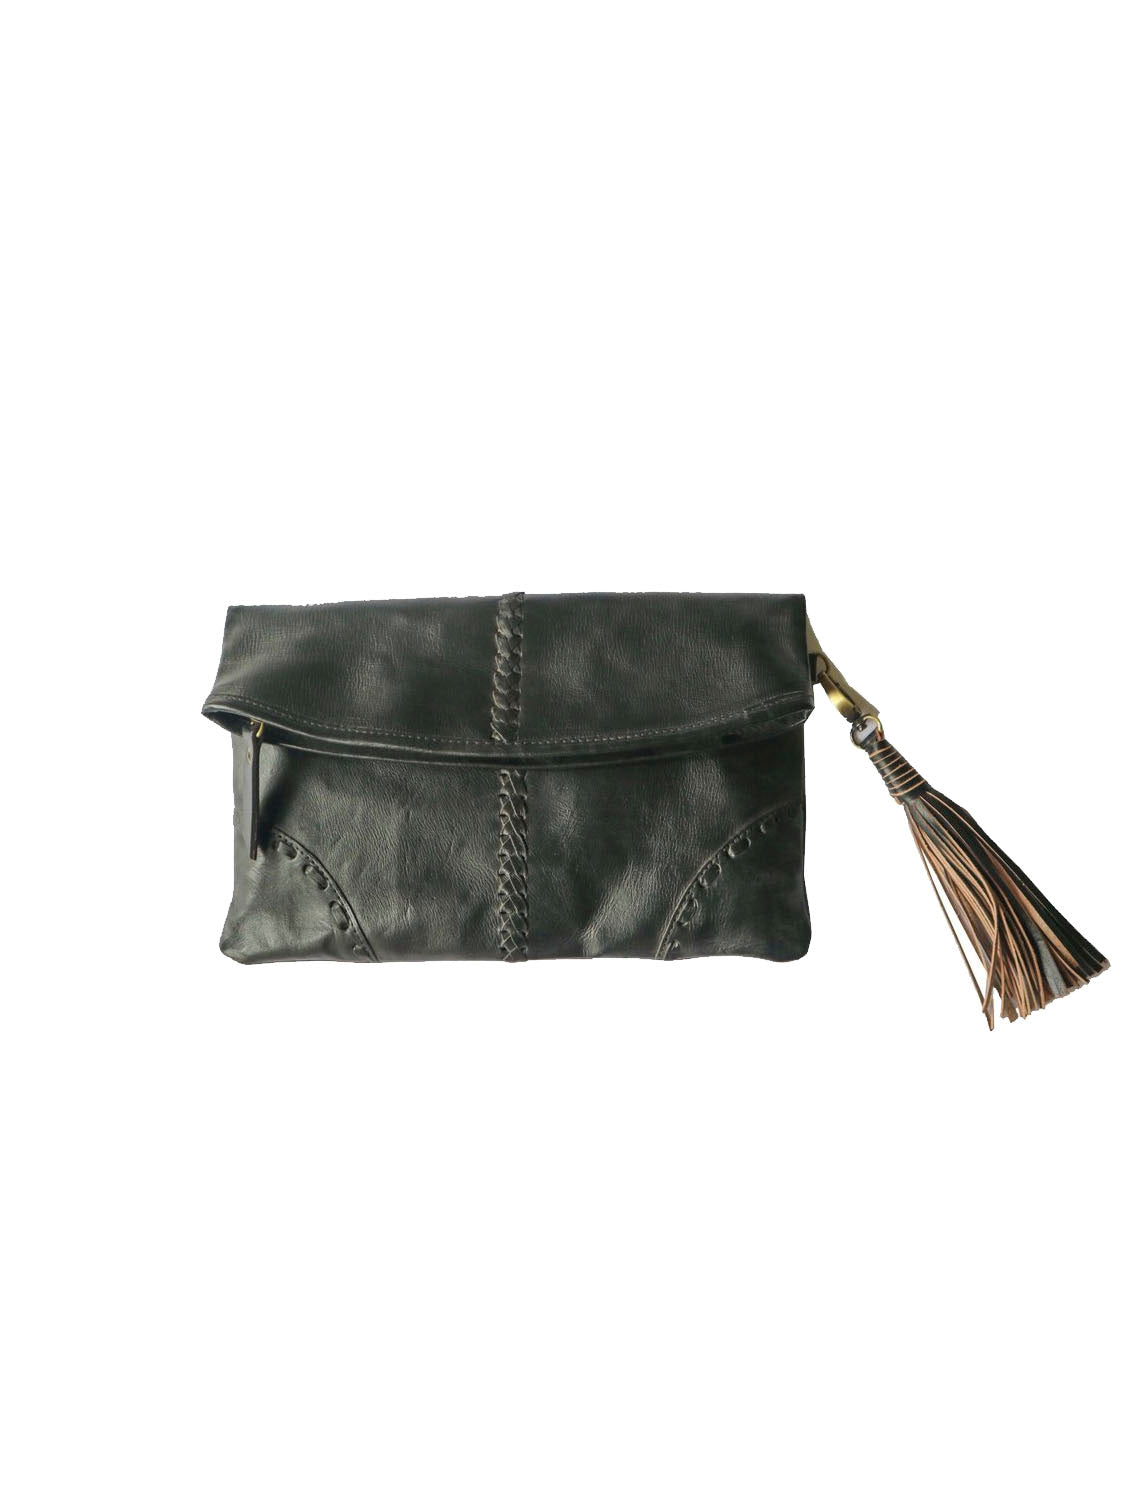 Black Leather clutch with Tassel and Stitch Detail